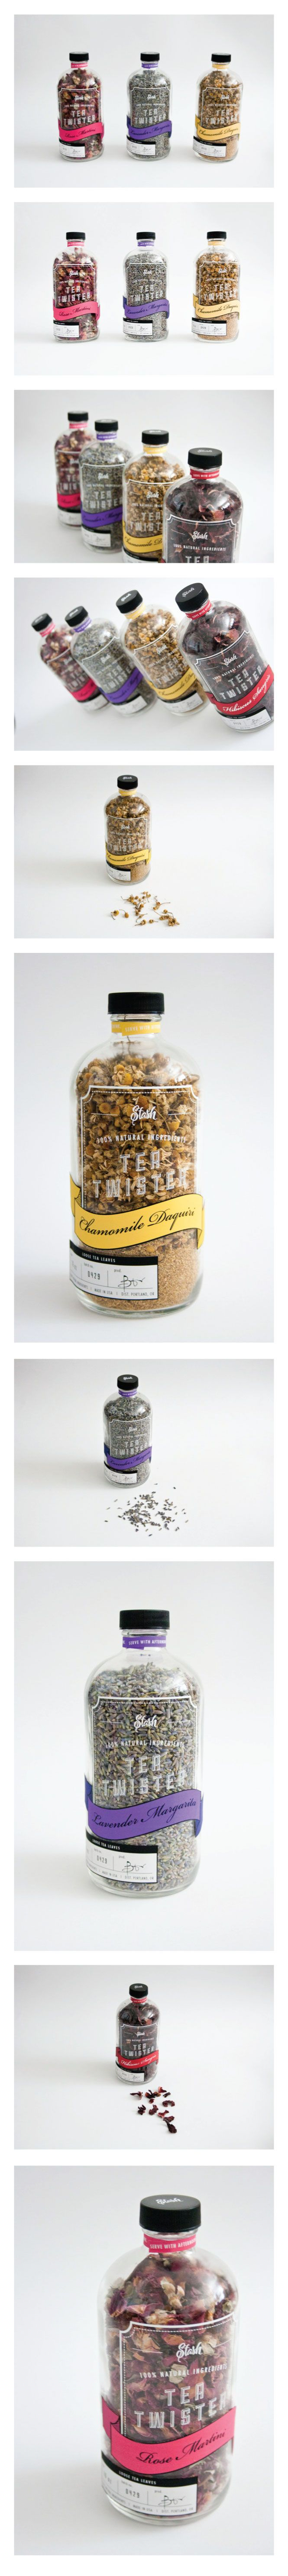 Tea Twister Graphic Design, Packaging, Typography By Bernee Briones http://berneebriones.com